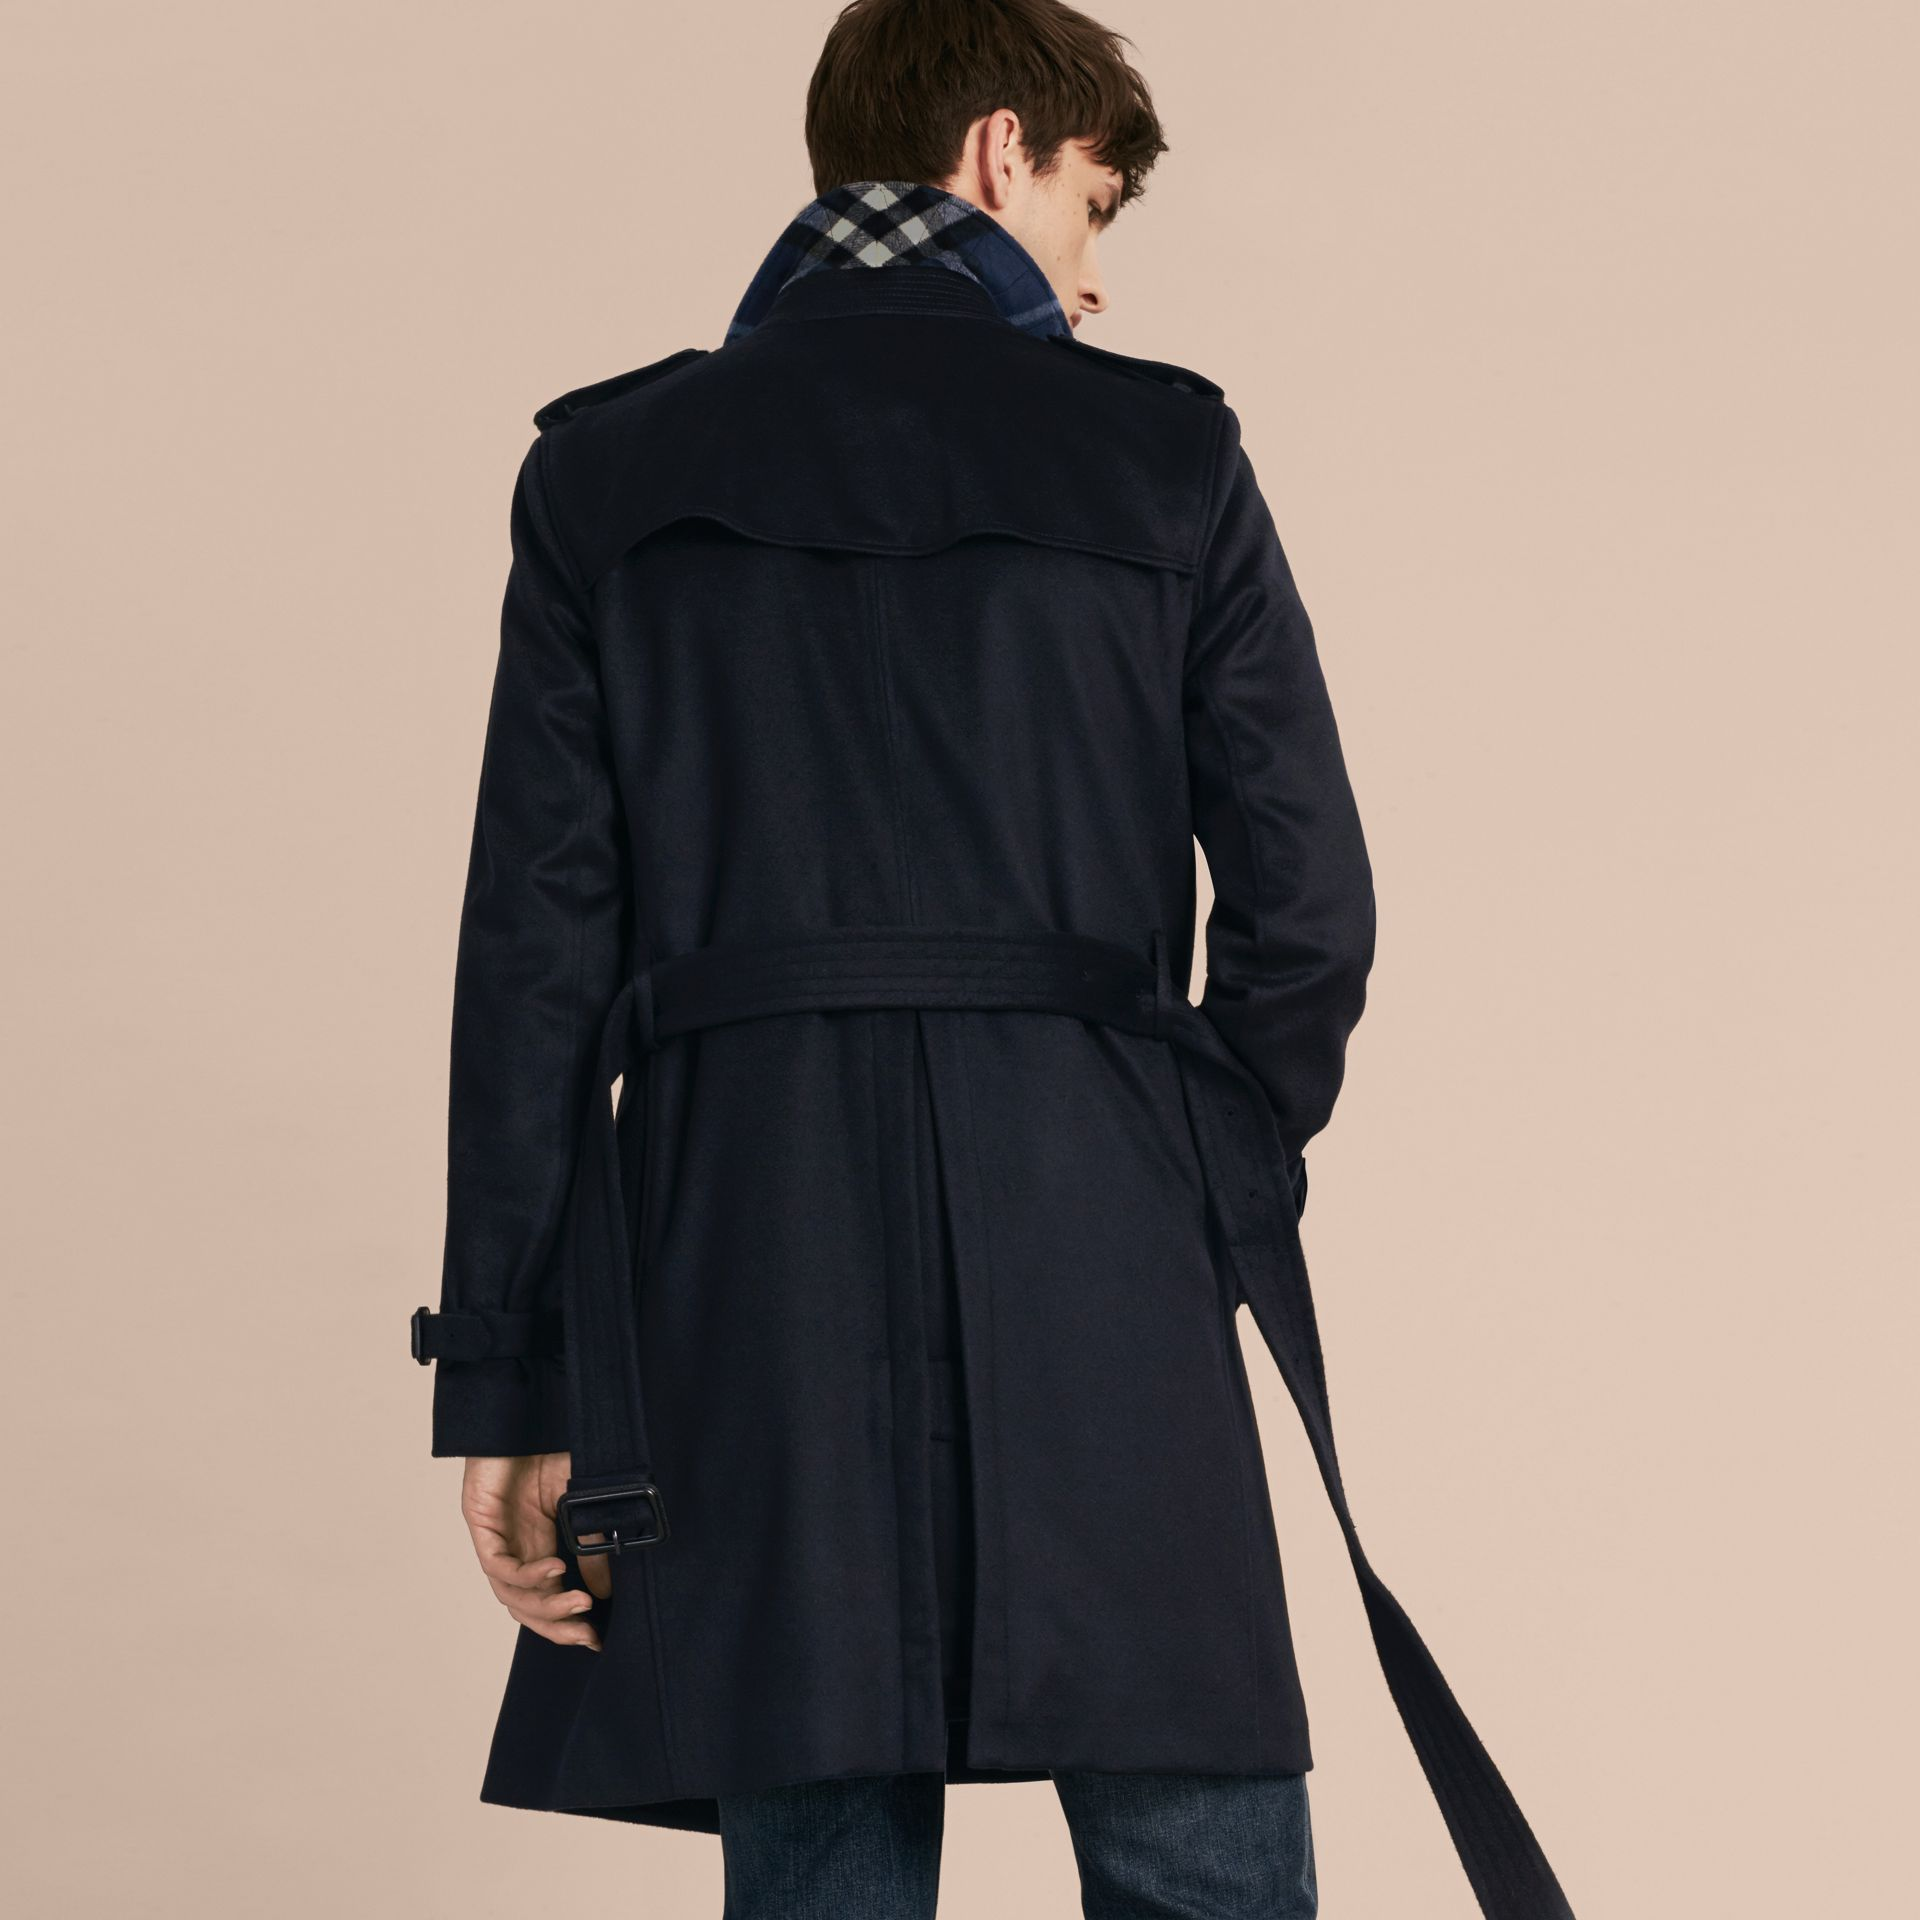 Navy Cashmere Trench Coat Navy - gallery image 3